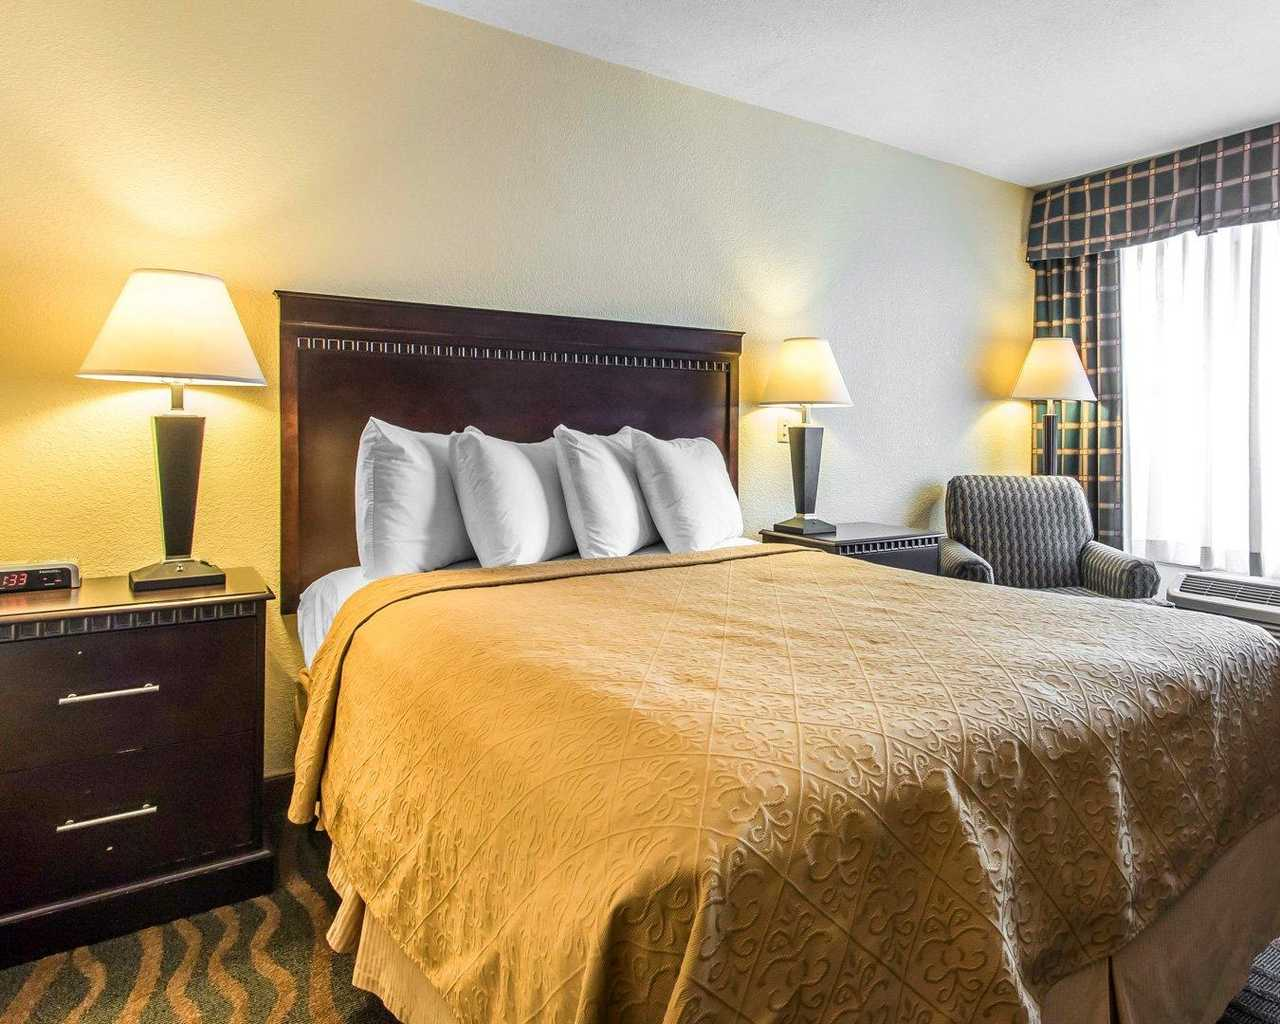 https://www.hotelsbyday.com/_data/default-hotel_image/1/7503/standardroomsbedroom1.jpg